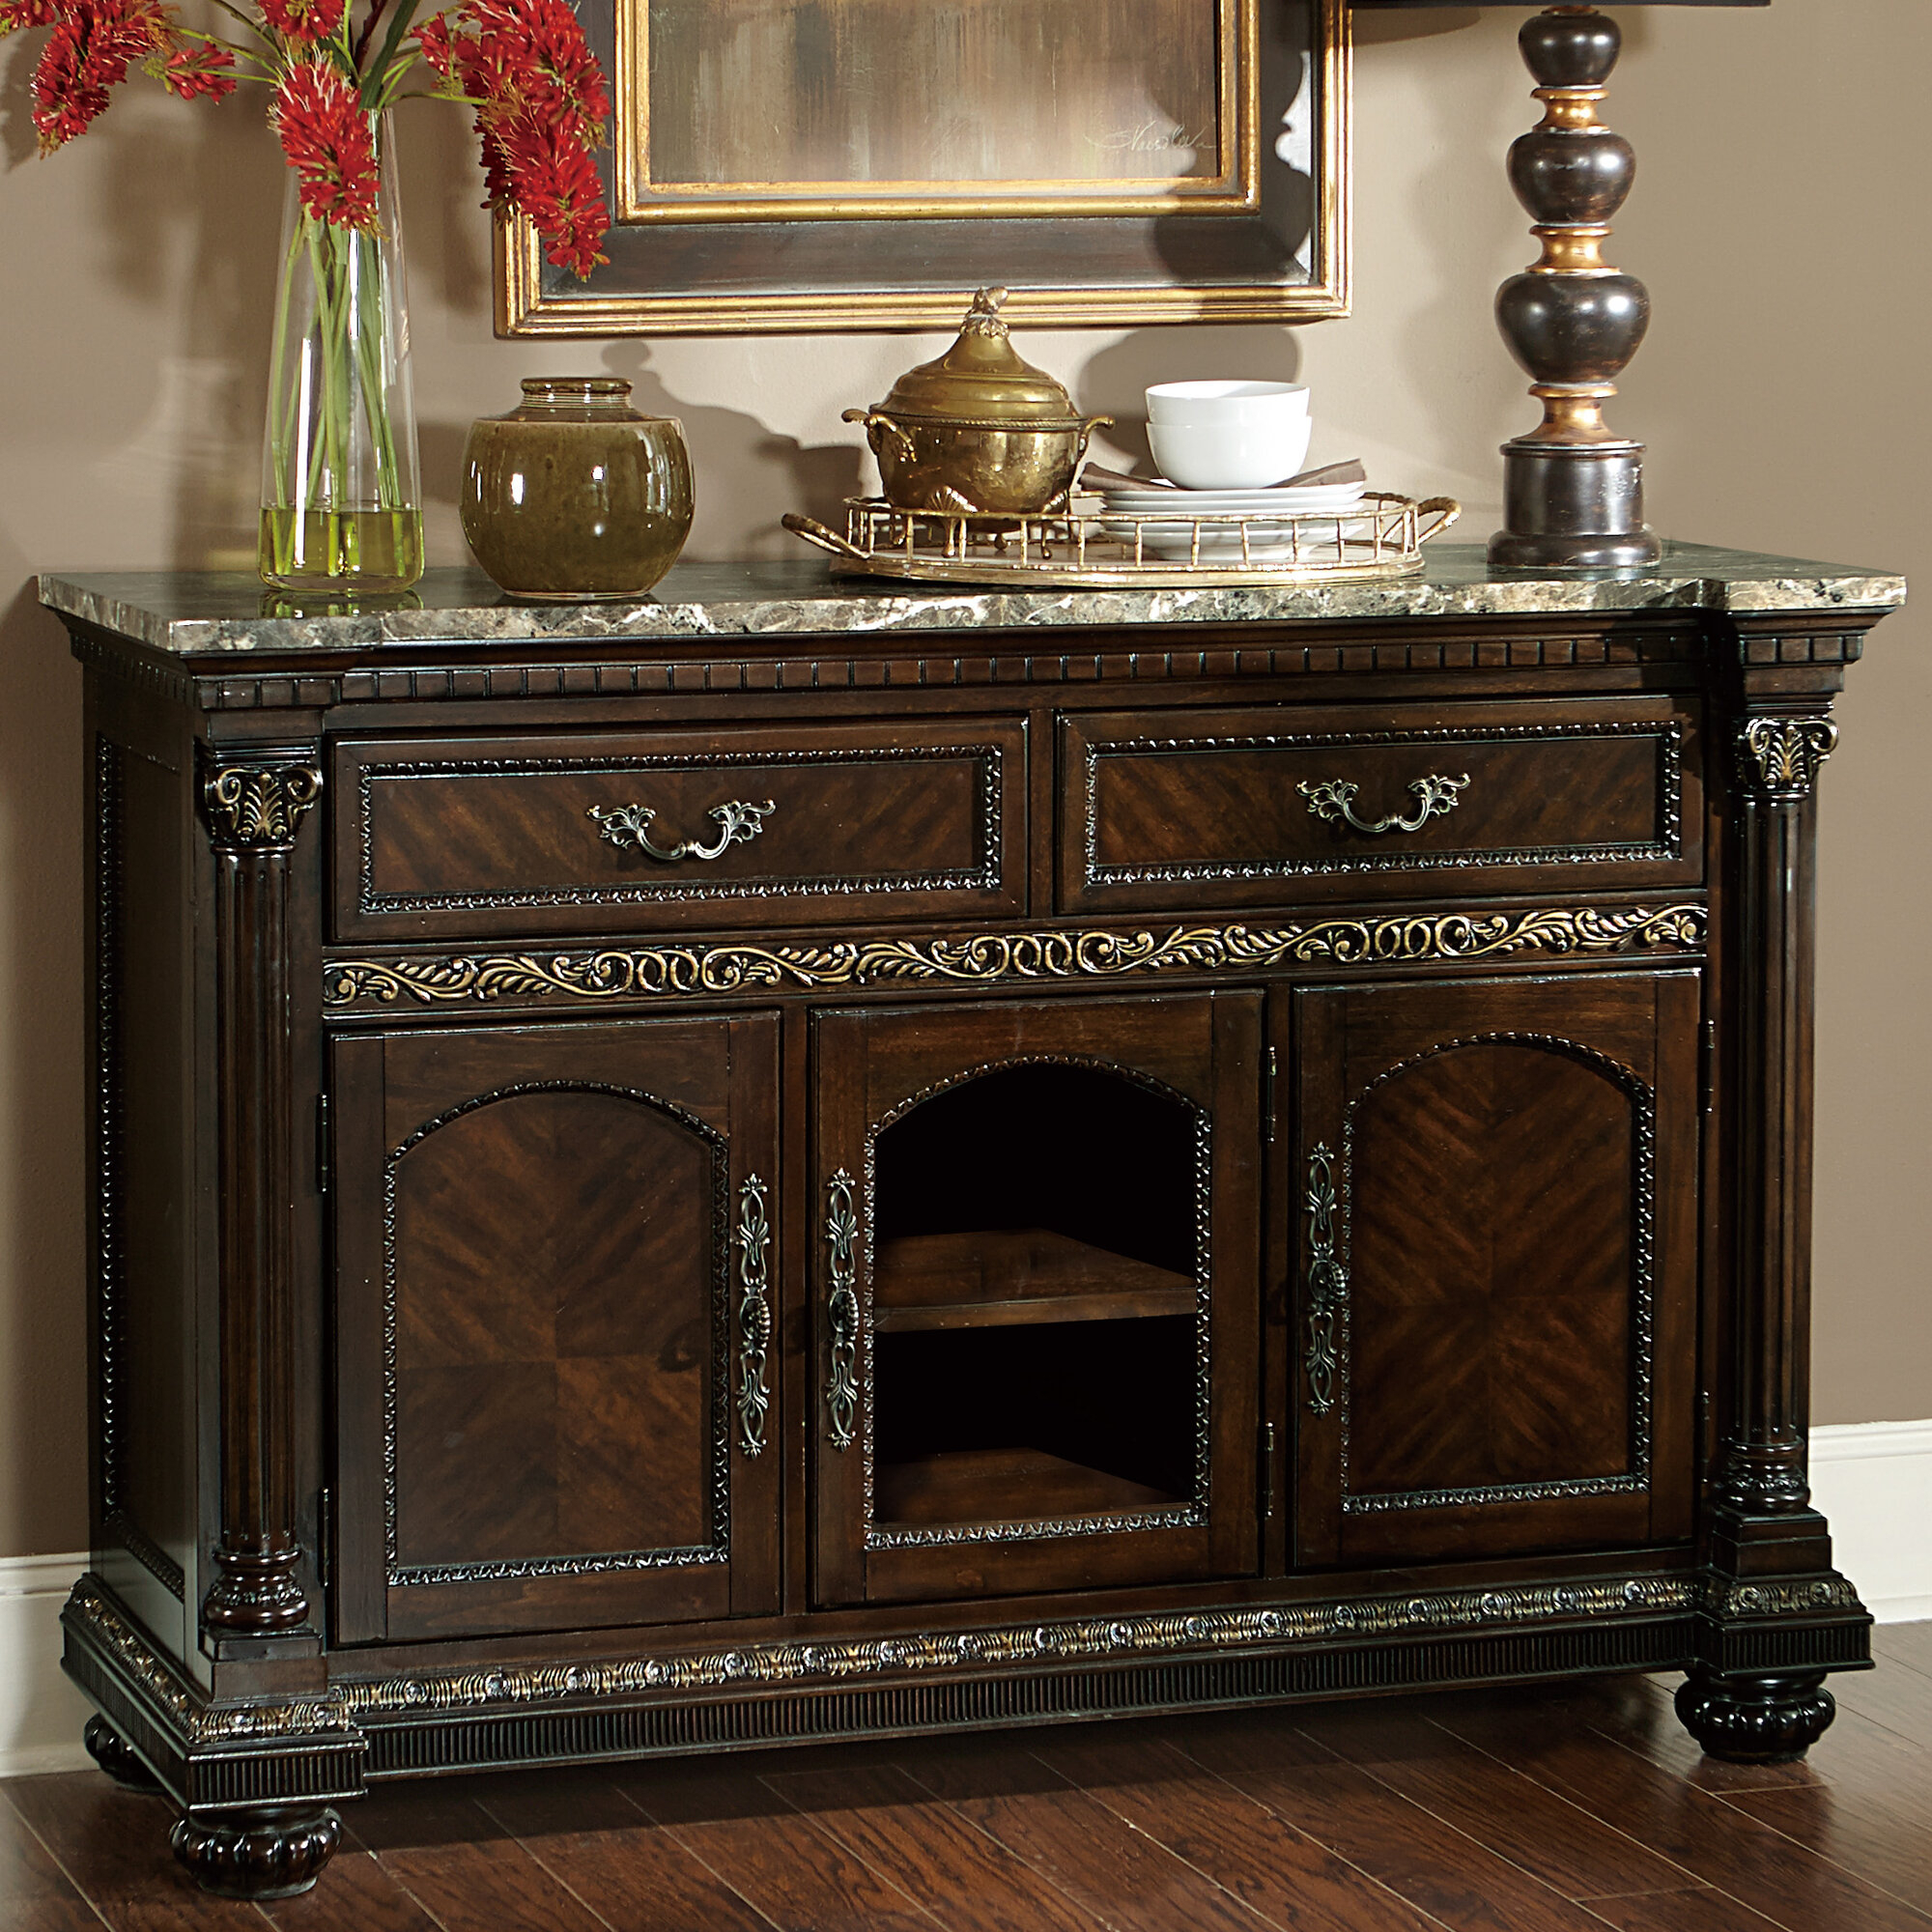 Details About Astoria Grand Clearwell Sideboard With Regard To Chalus Sideboards (View 9 of 30)